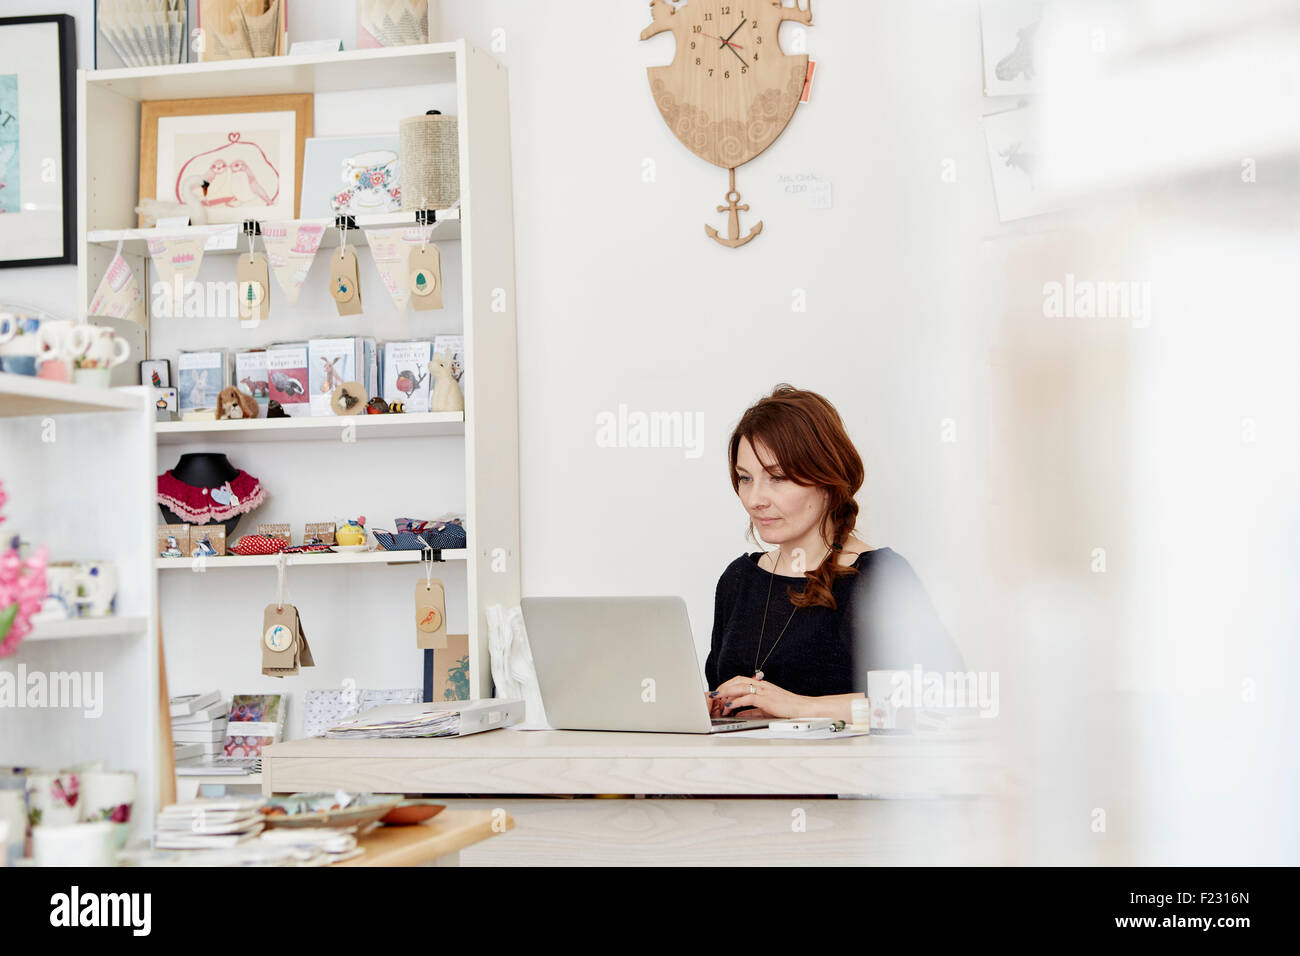 A woman sitting at a desk in a small gift shop, doing the paperwork, managing the business, using a laptop. - Stock Image